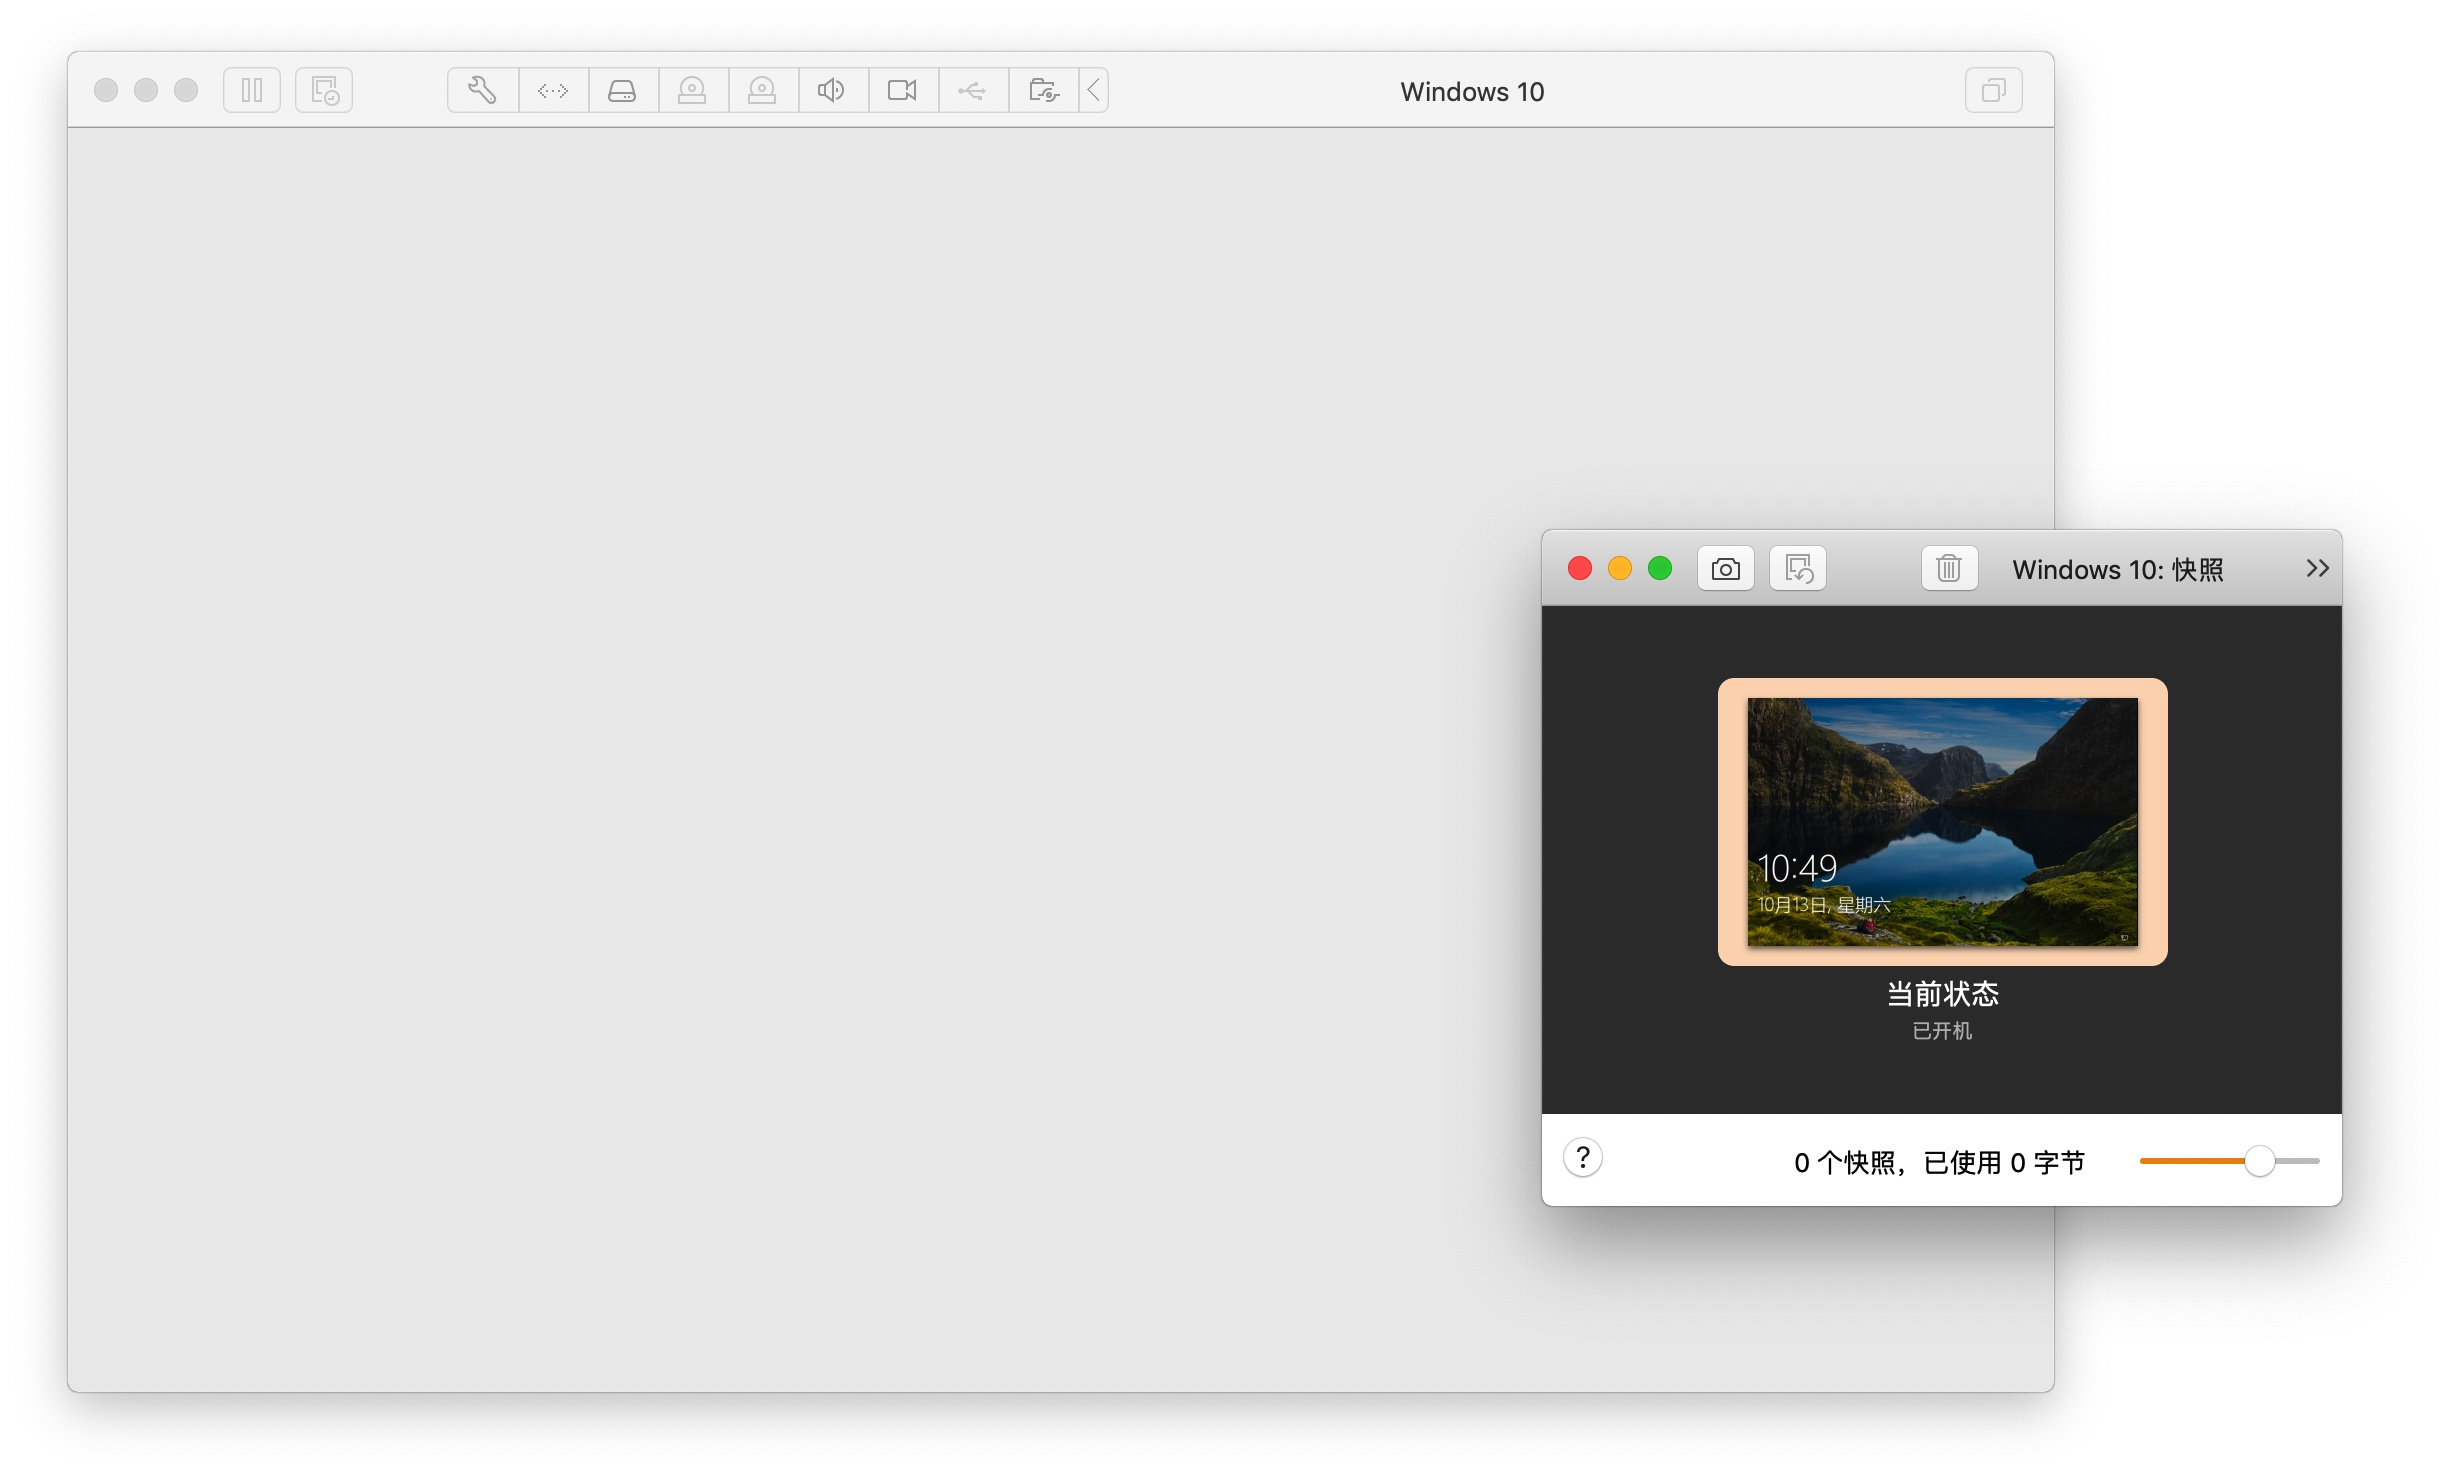 VMware Fusion 10 works abnormally with Gray · Issue #42